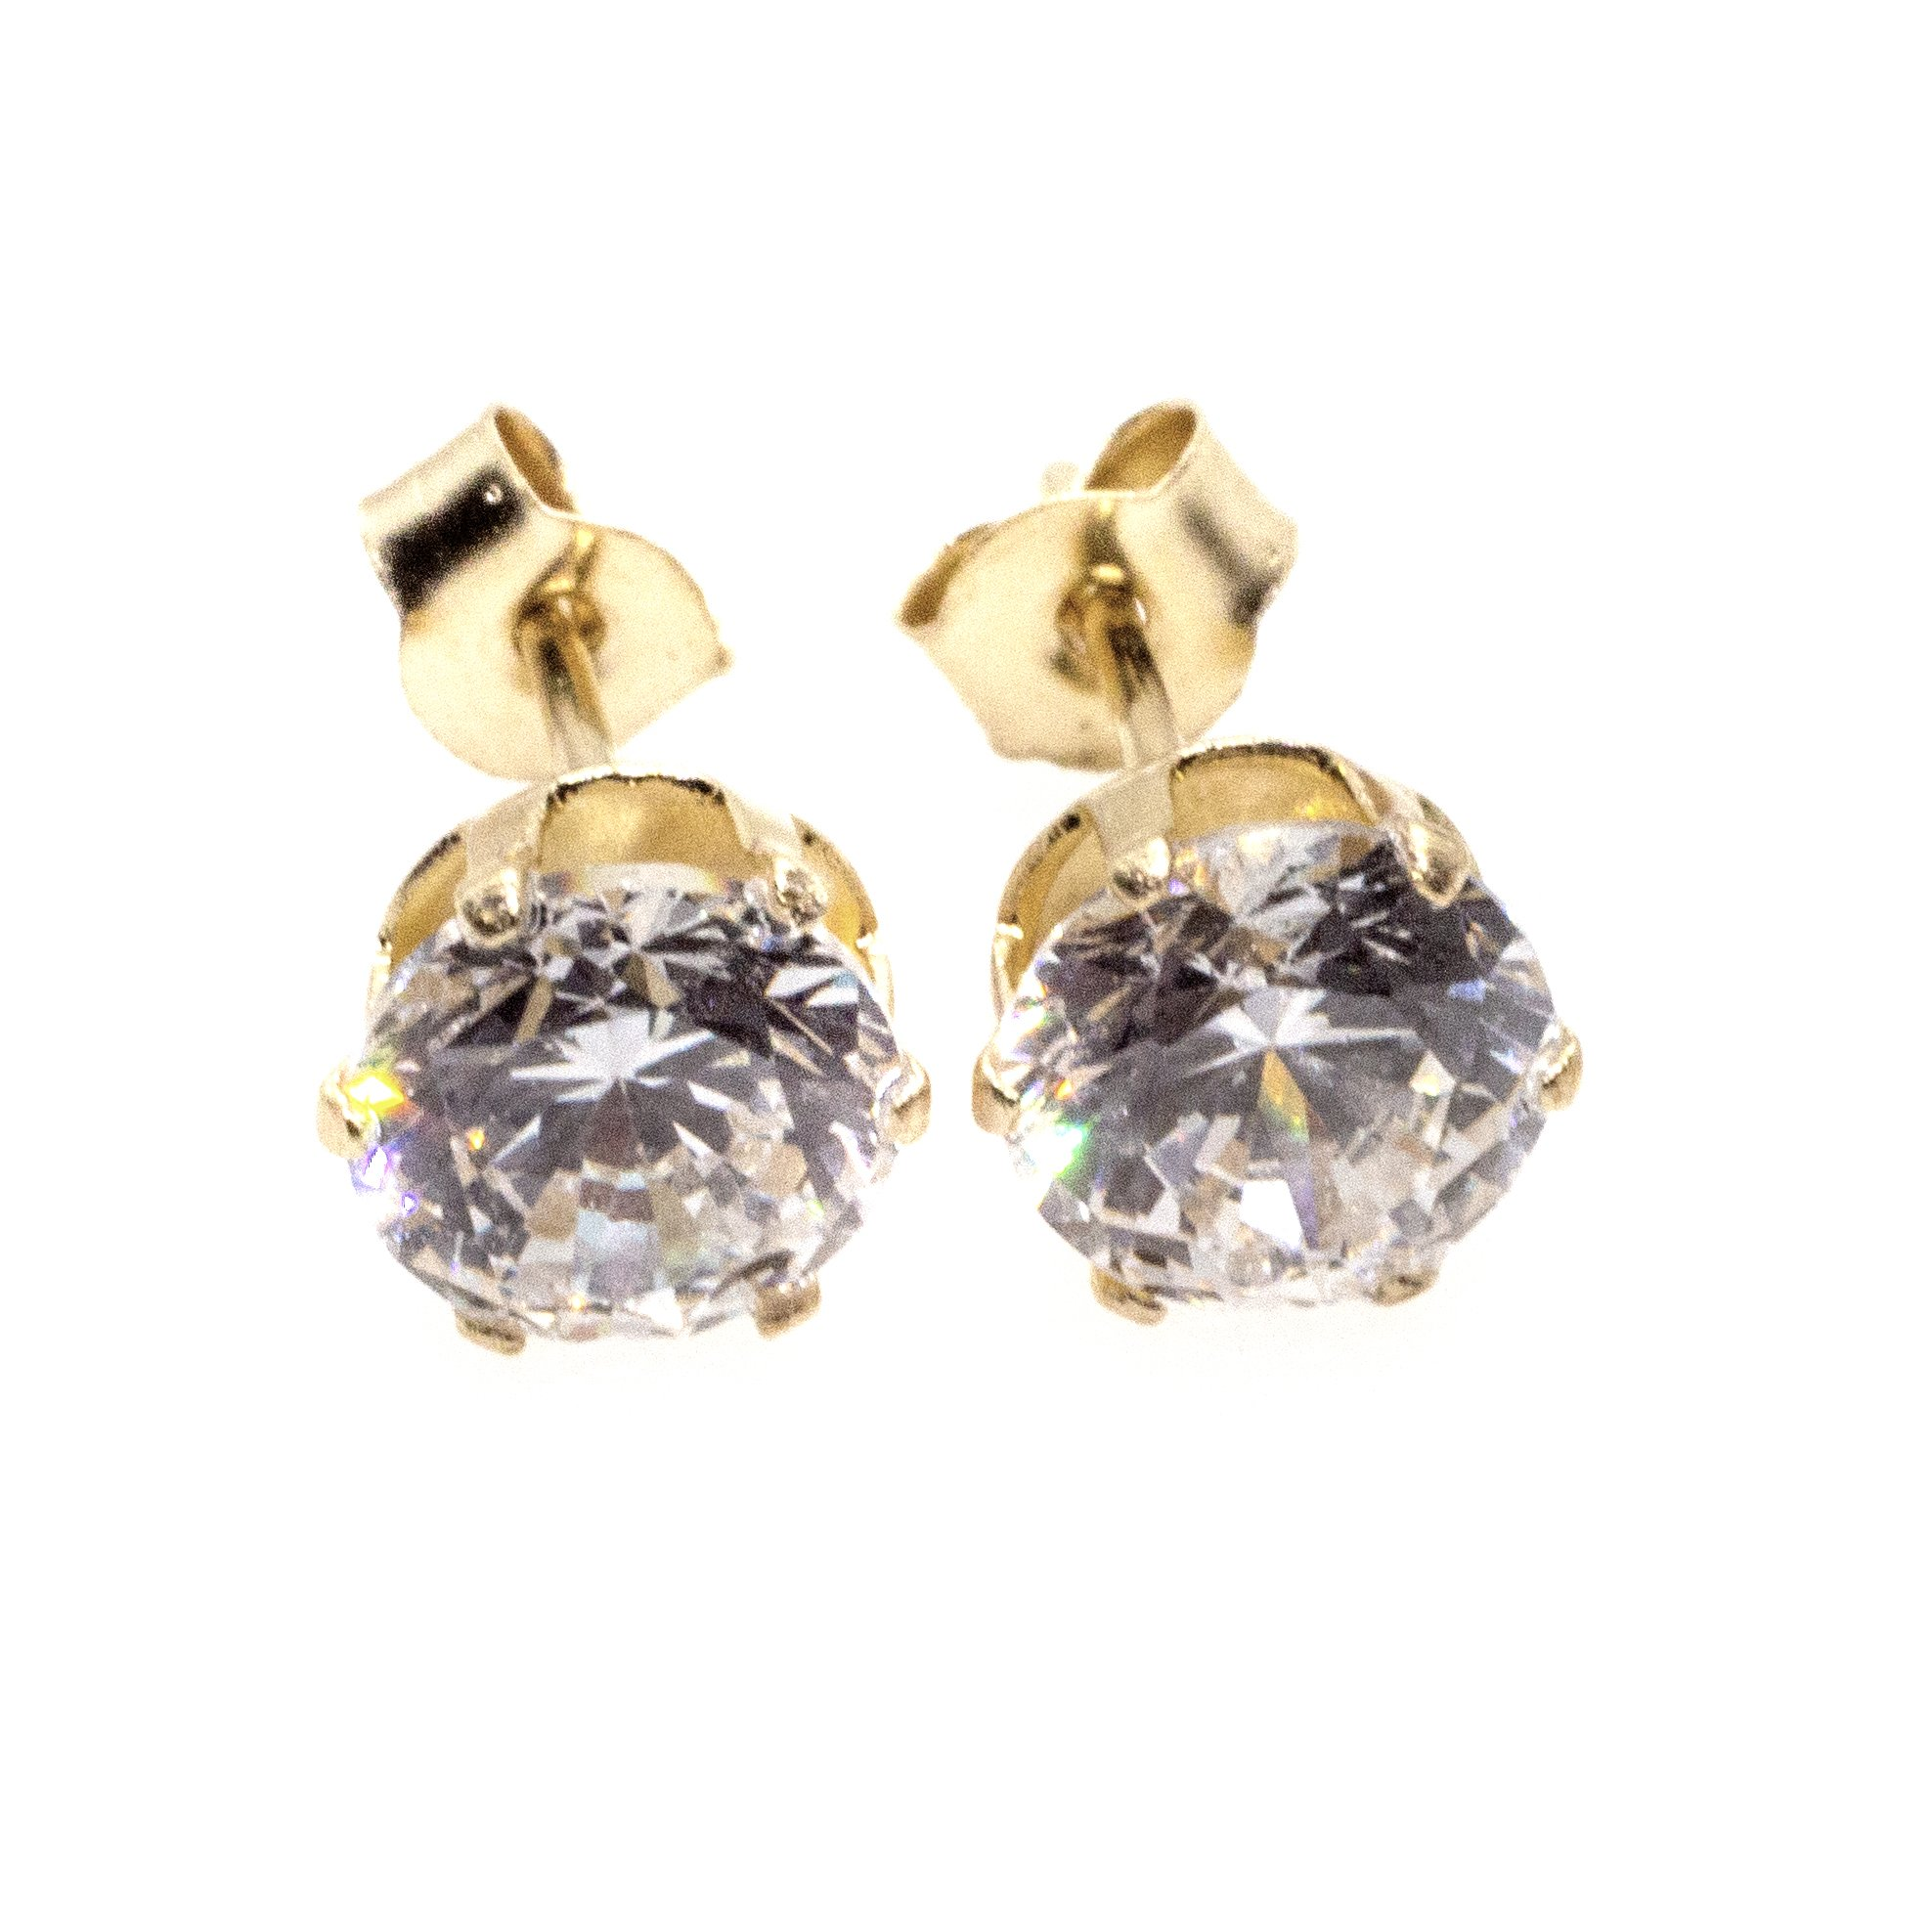 5mm CZ stud earrings 9ct yellow gold